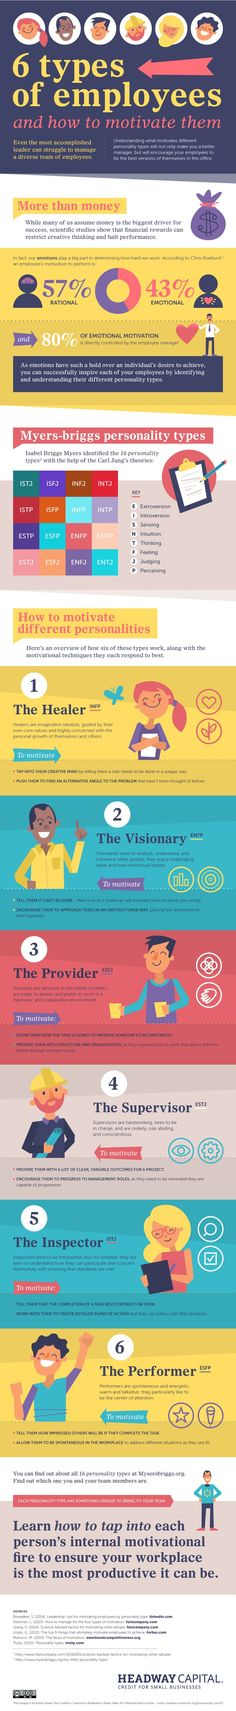 How Managers Can Motivate 6 Employee Personality Types   #infographic via @HubSpot